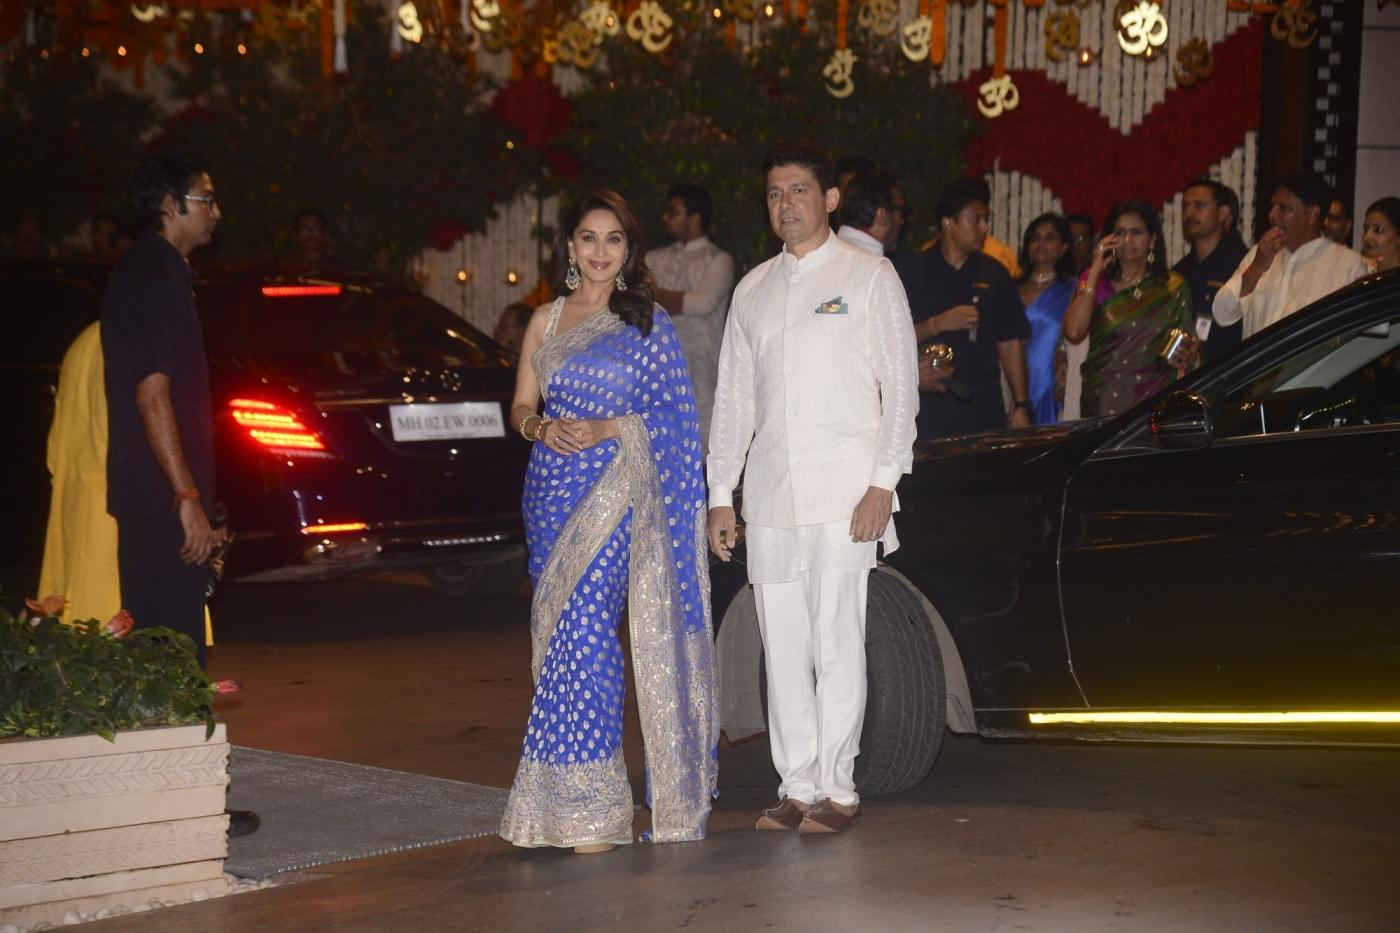 Mumbai: Actress Madhuri Dixit Nene along with her husband Sriram Madhav Nene arrive at Reliance Industries Chairman and MD Mukesh Ambani's residence to celebrate Ganesh Chaturthi in Mumbai on Sept 13, 2018. (Photo: IANS) by .